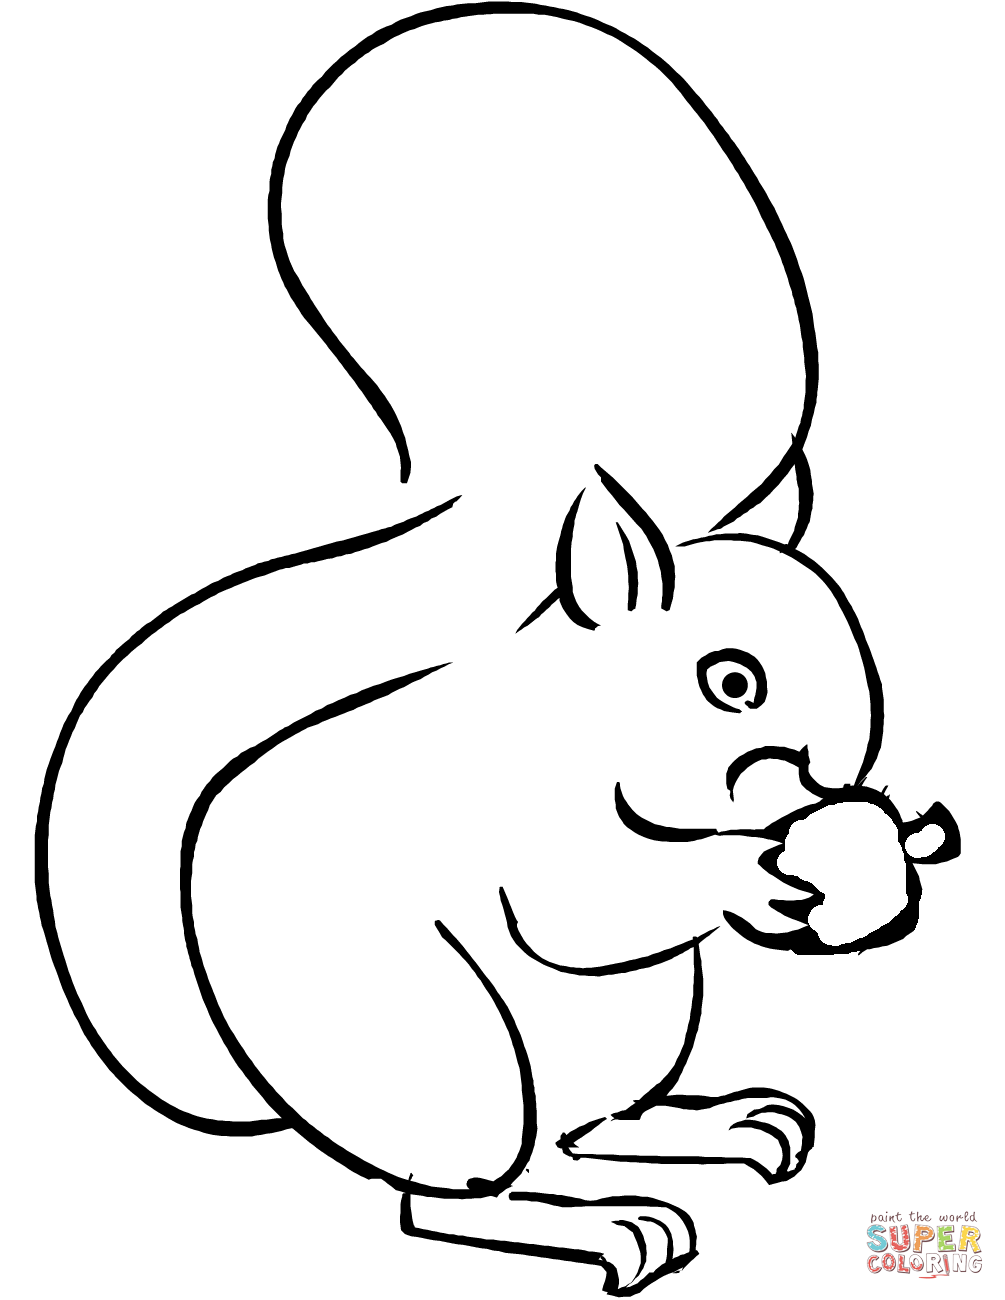 Free Printable Squirrel Coloring Pages At Getdrawings Com Free For